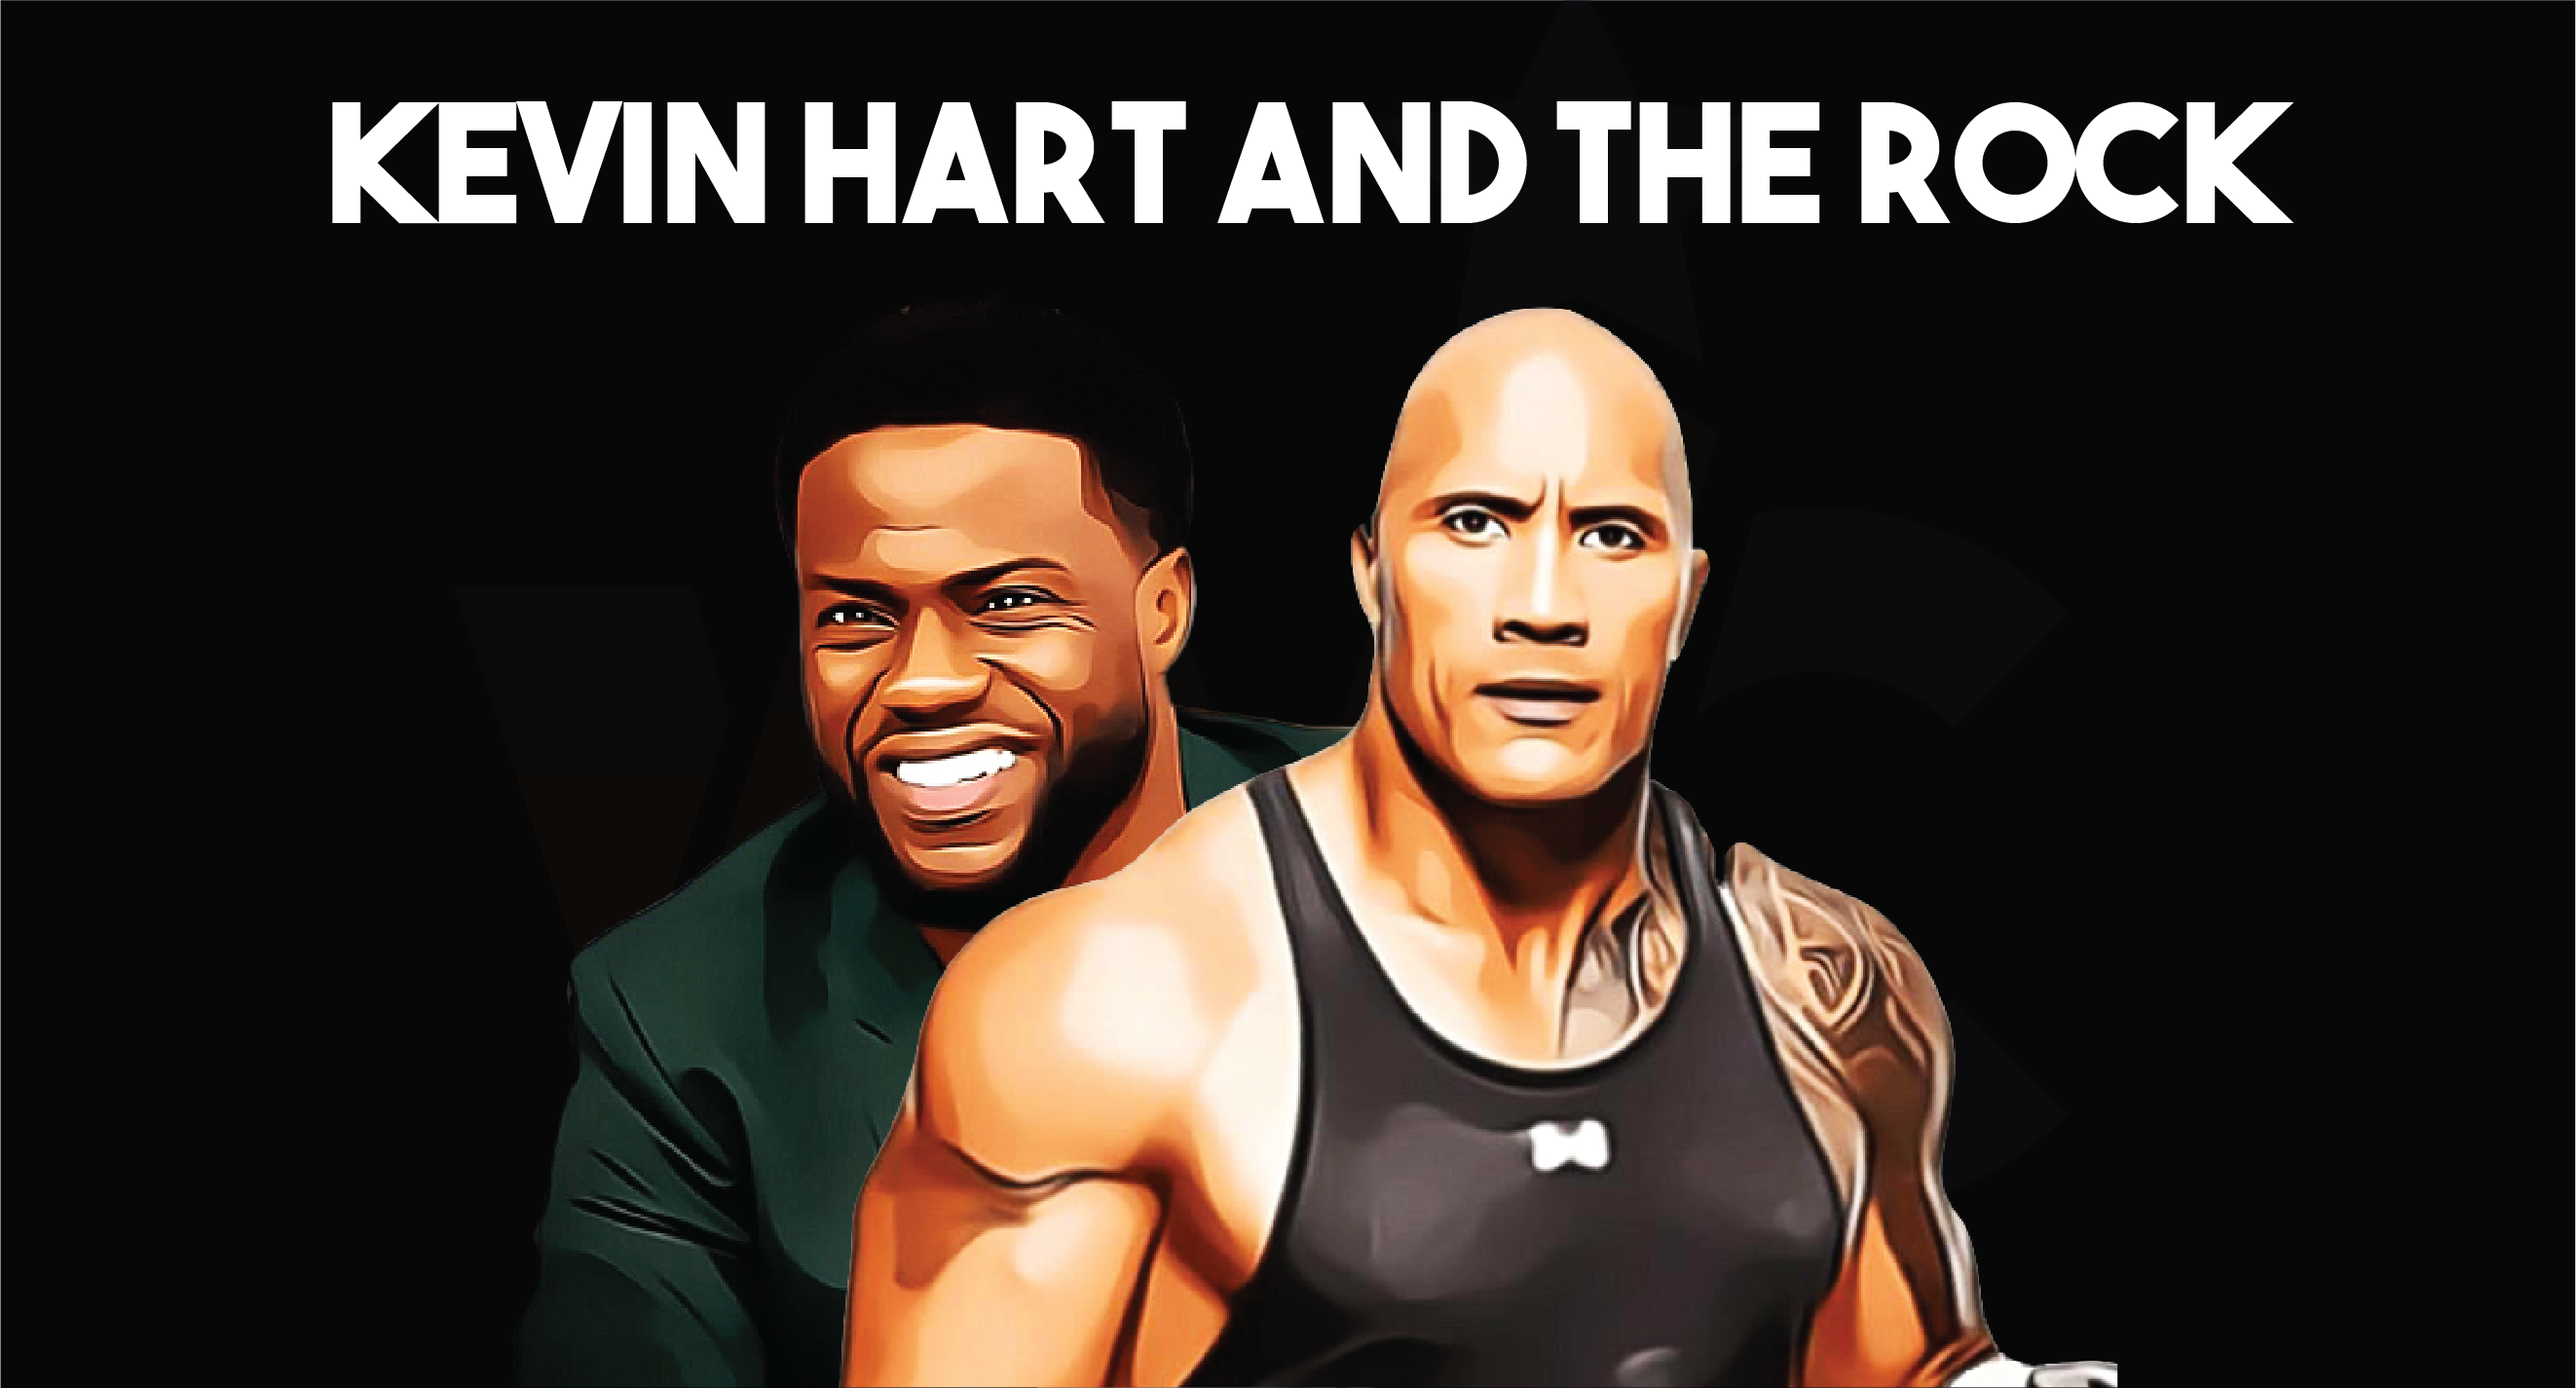 Kevin Hart and The Rock